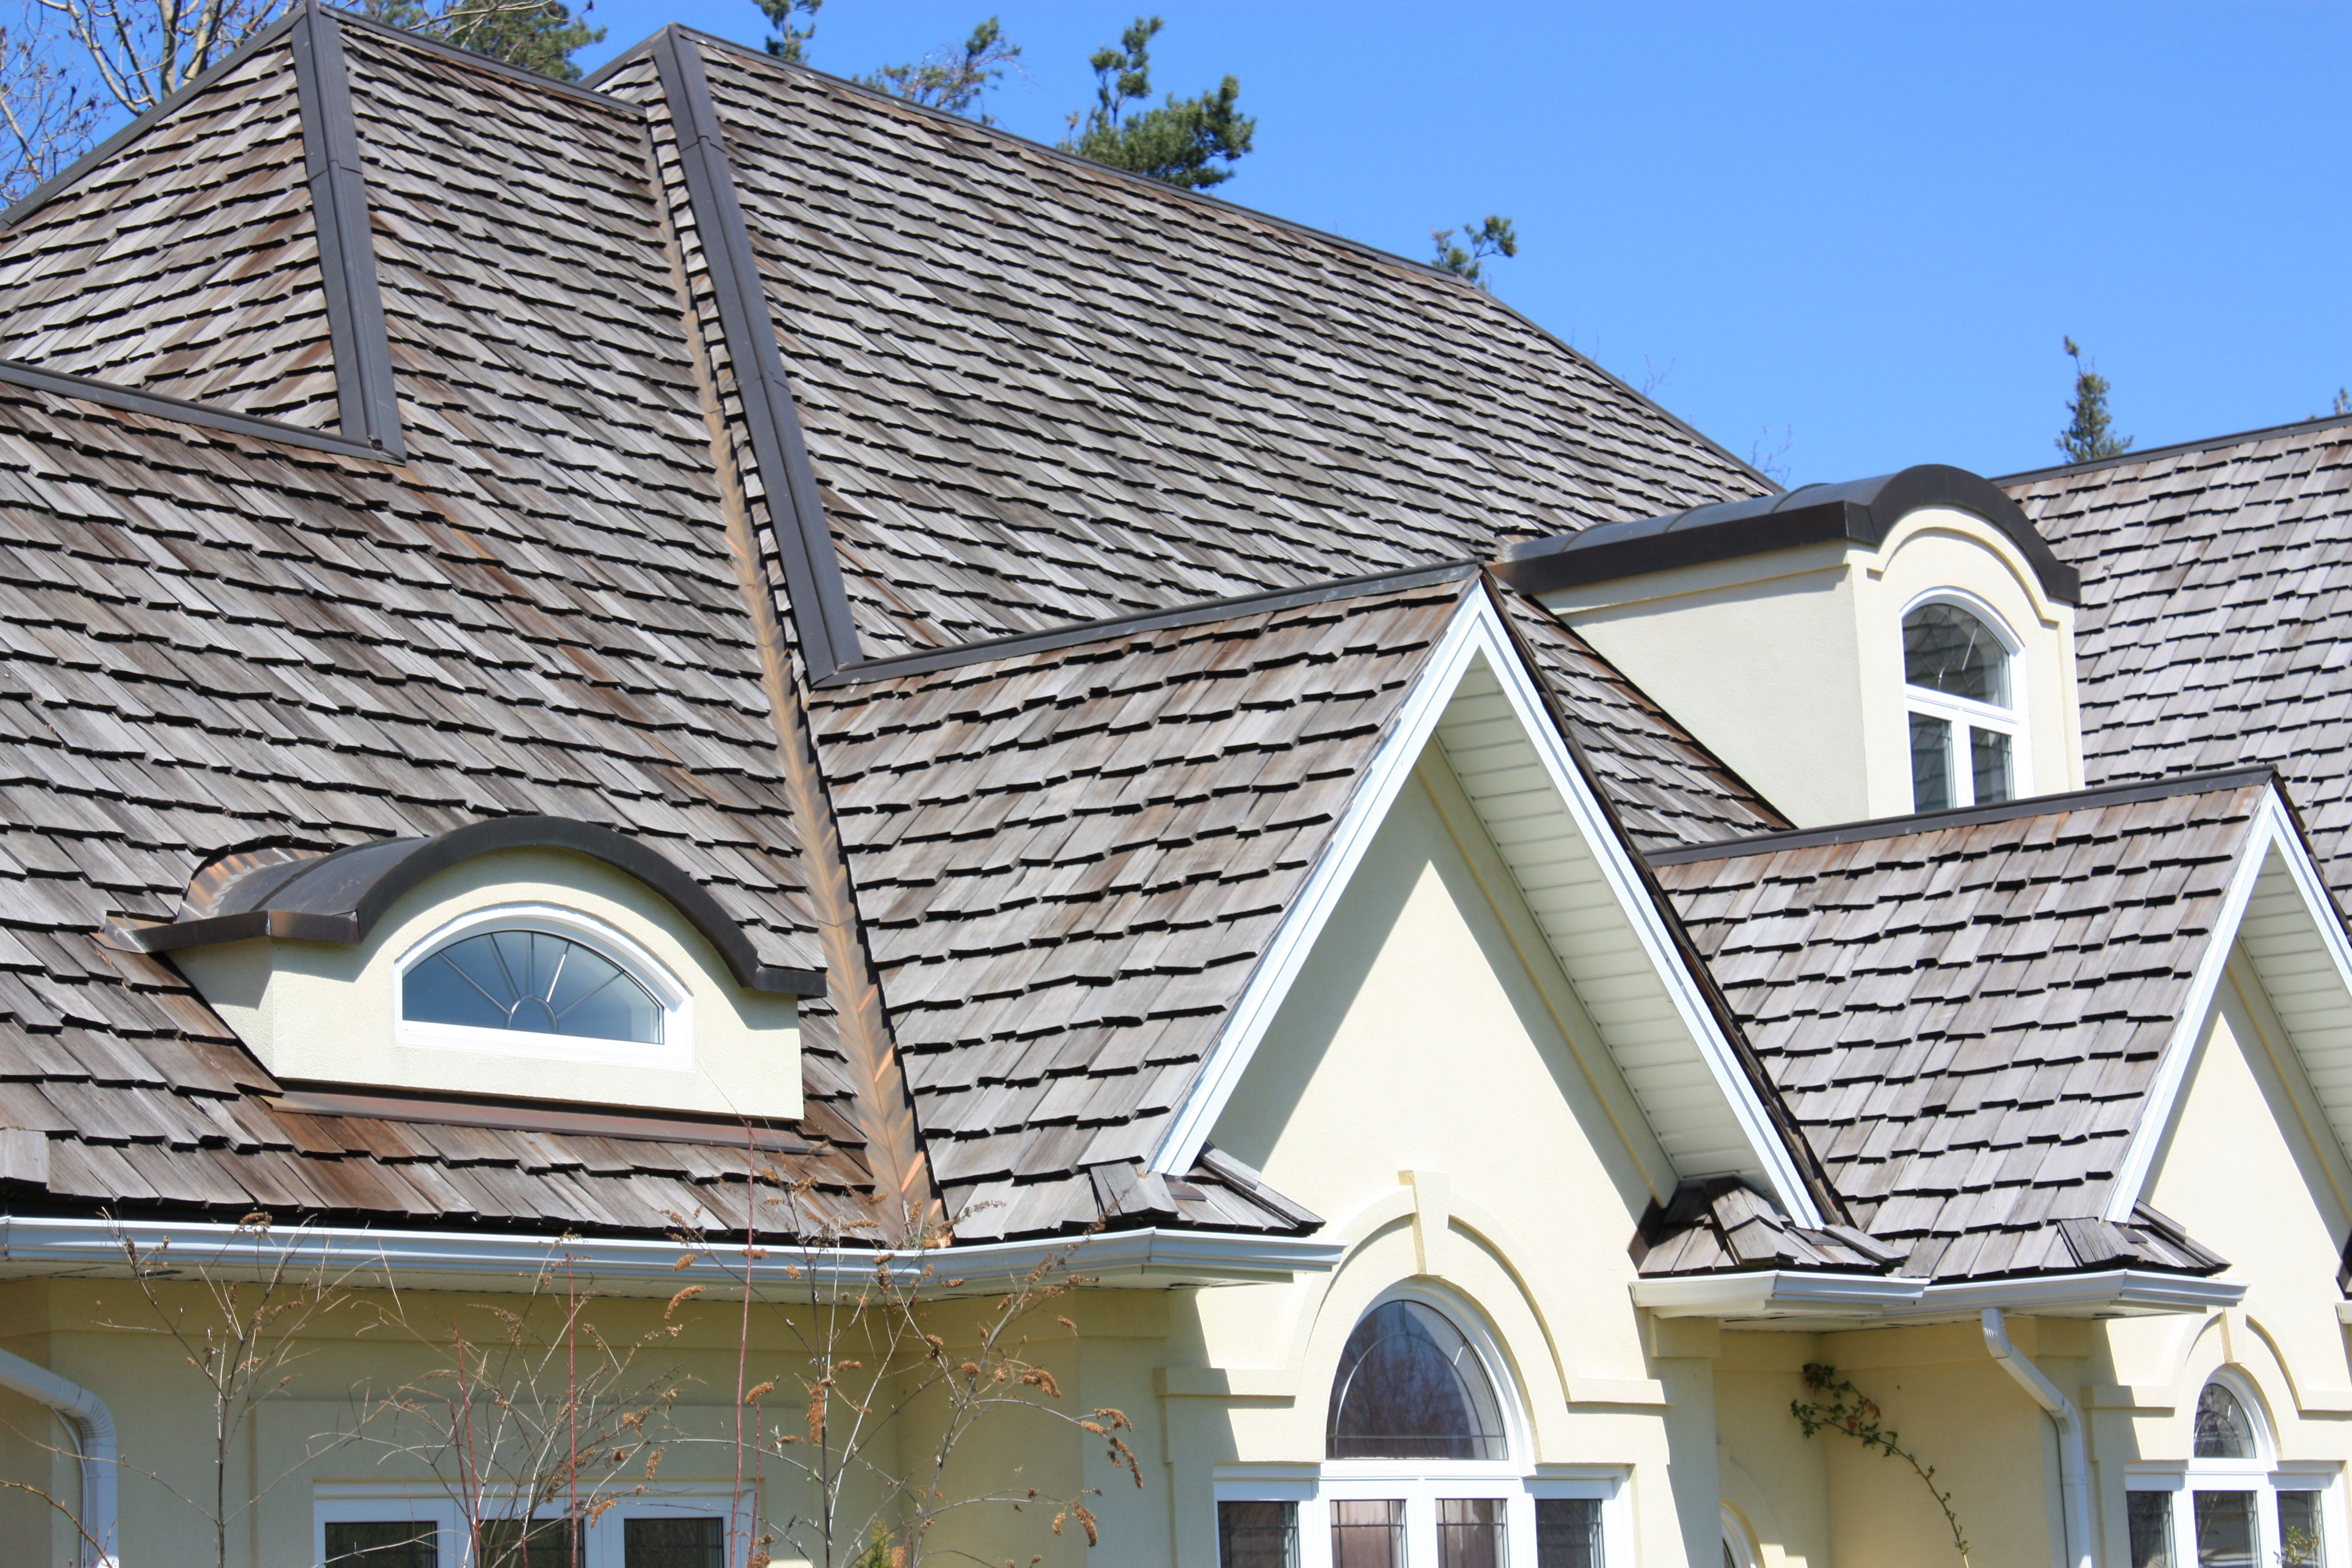 Copper Roofing Upper Canada Cedar Roof